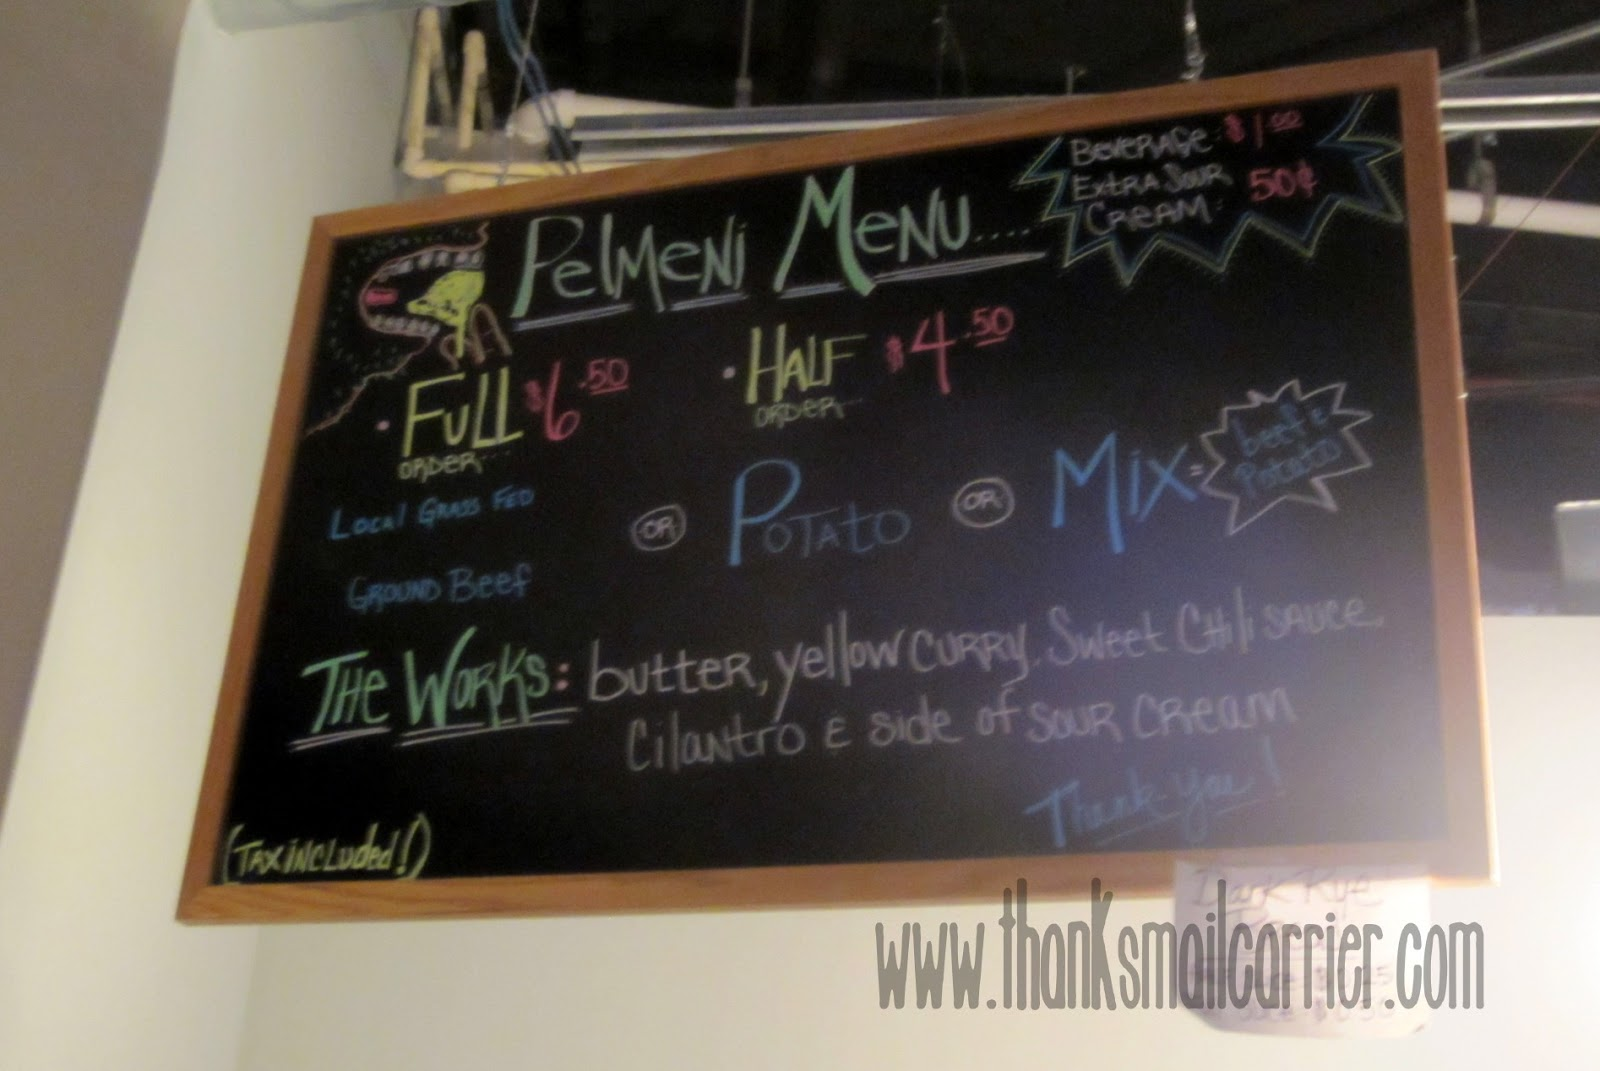 Paul's Pel'meni menu